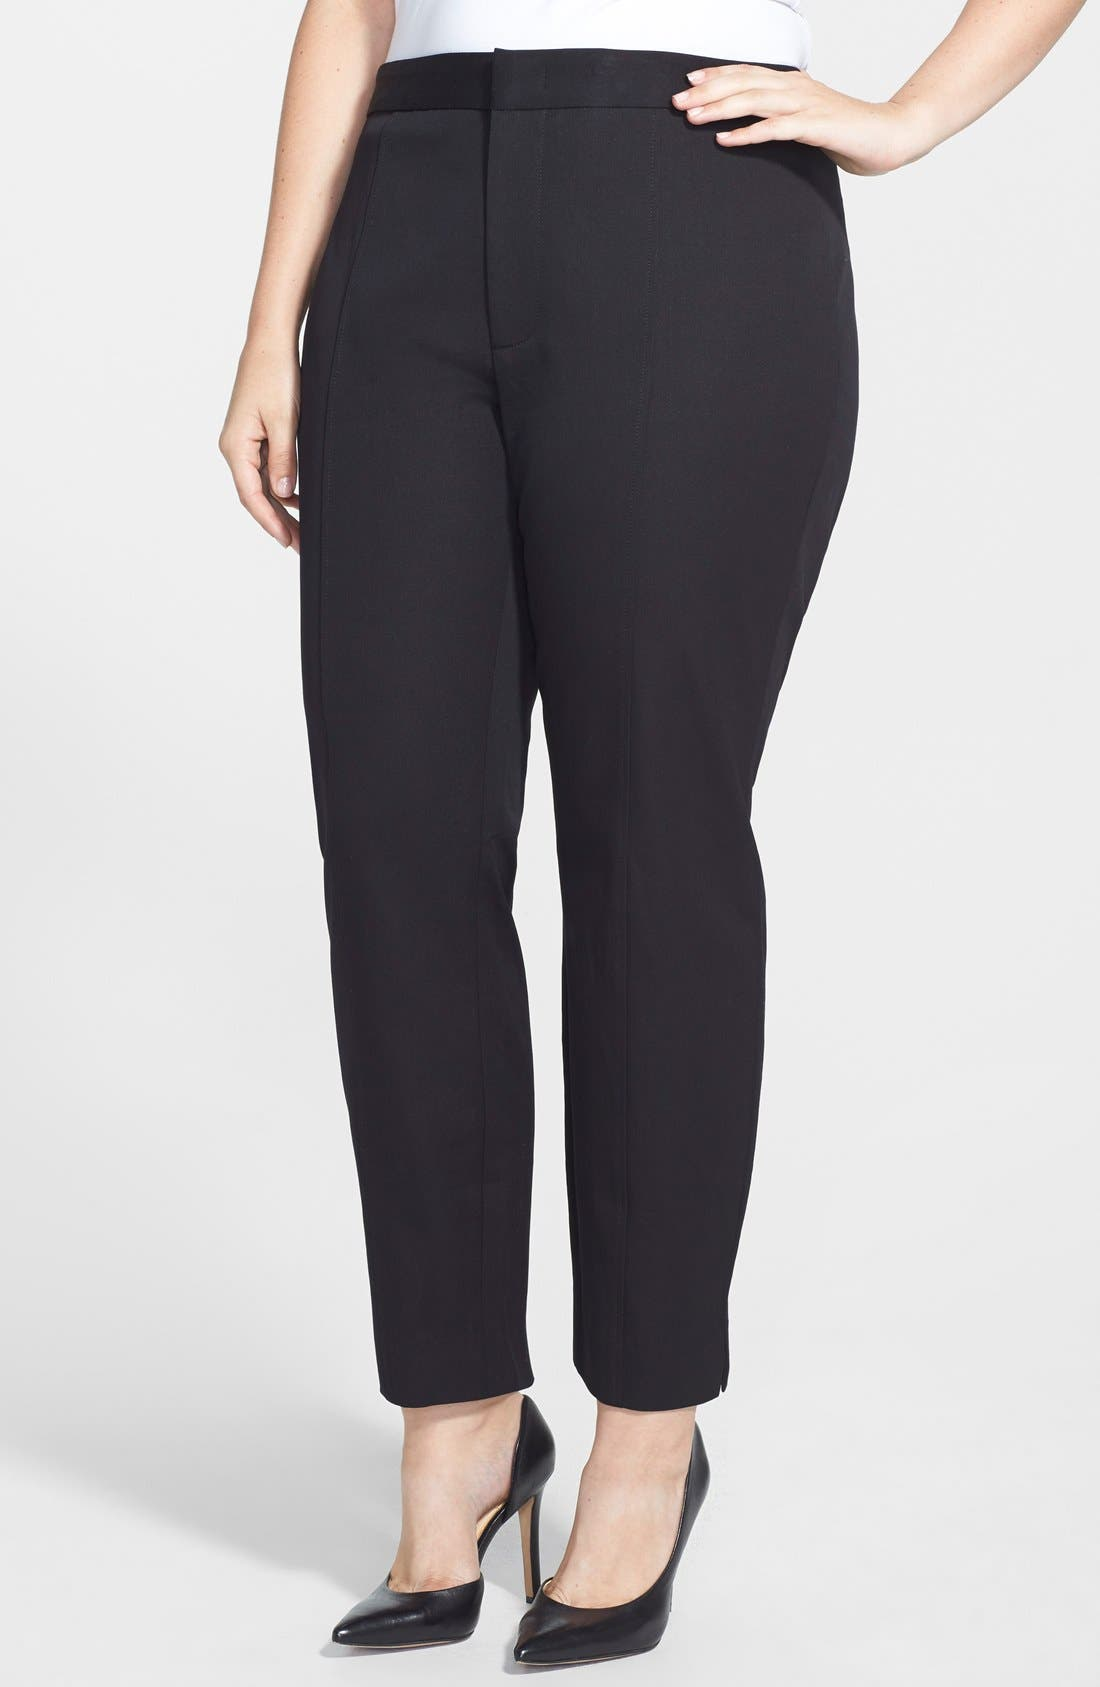 Alternate Image 1 Selected - NYDJ 'Fashion' Two-Way Stretch Slit Ankle Pants (Plus Size)